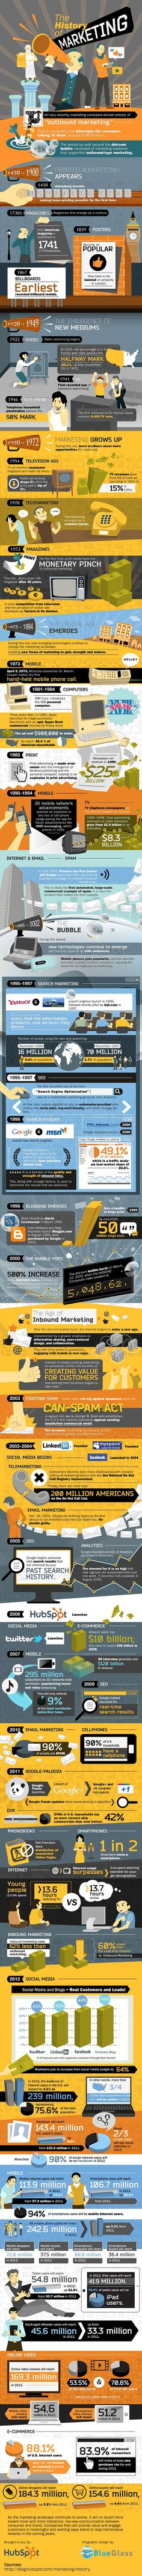 The History of Marketing #infographic